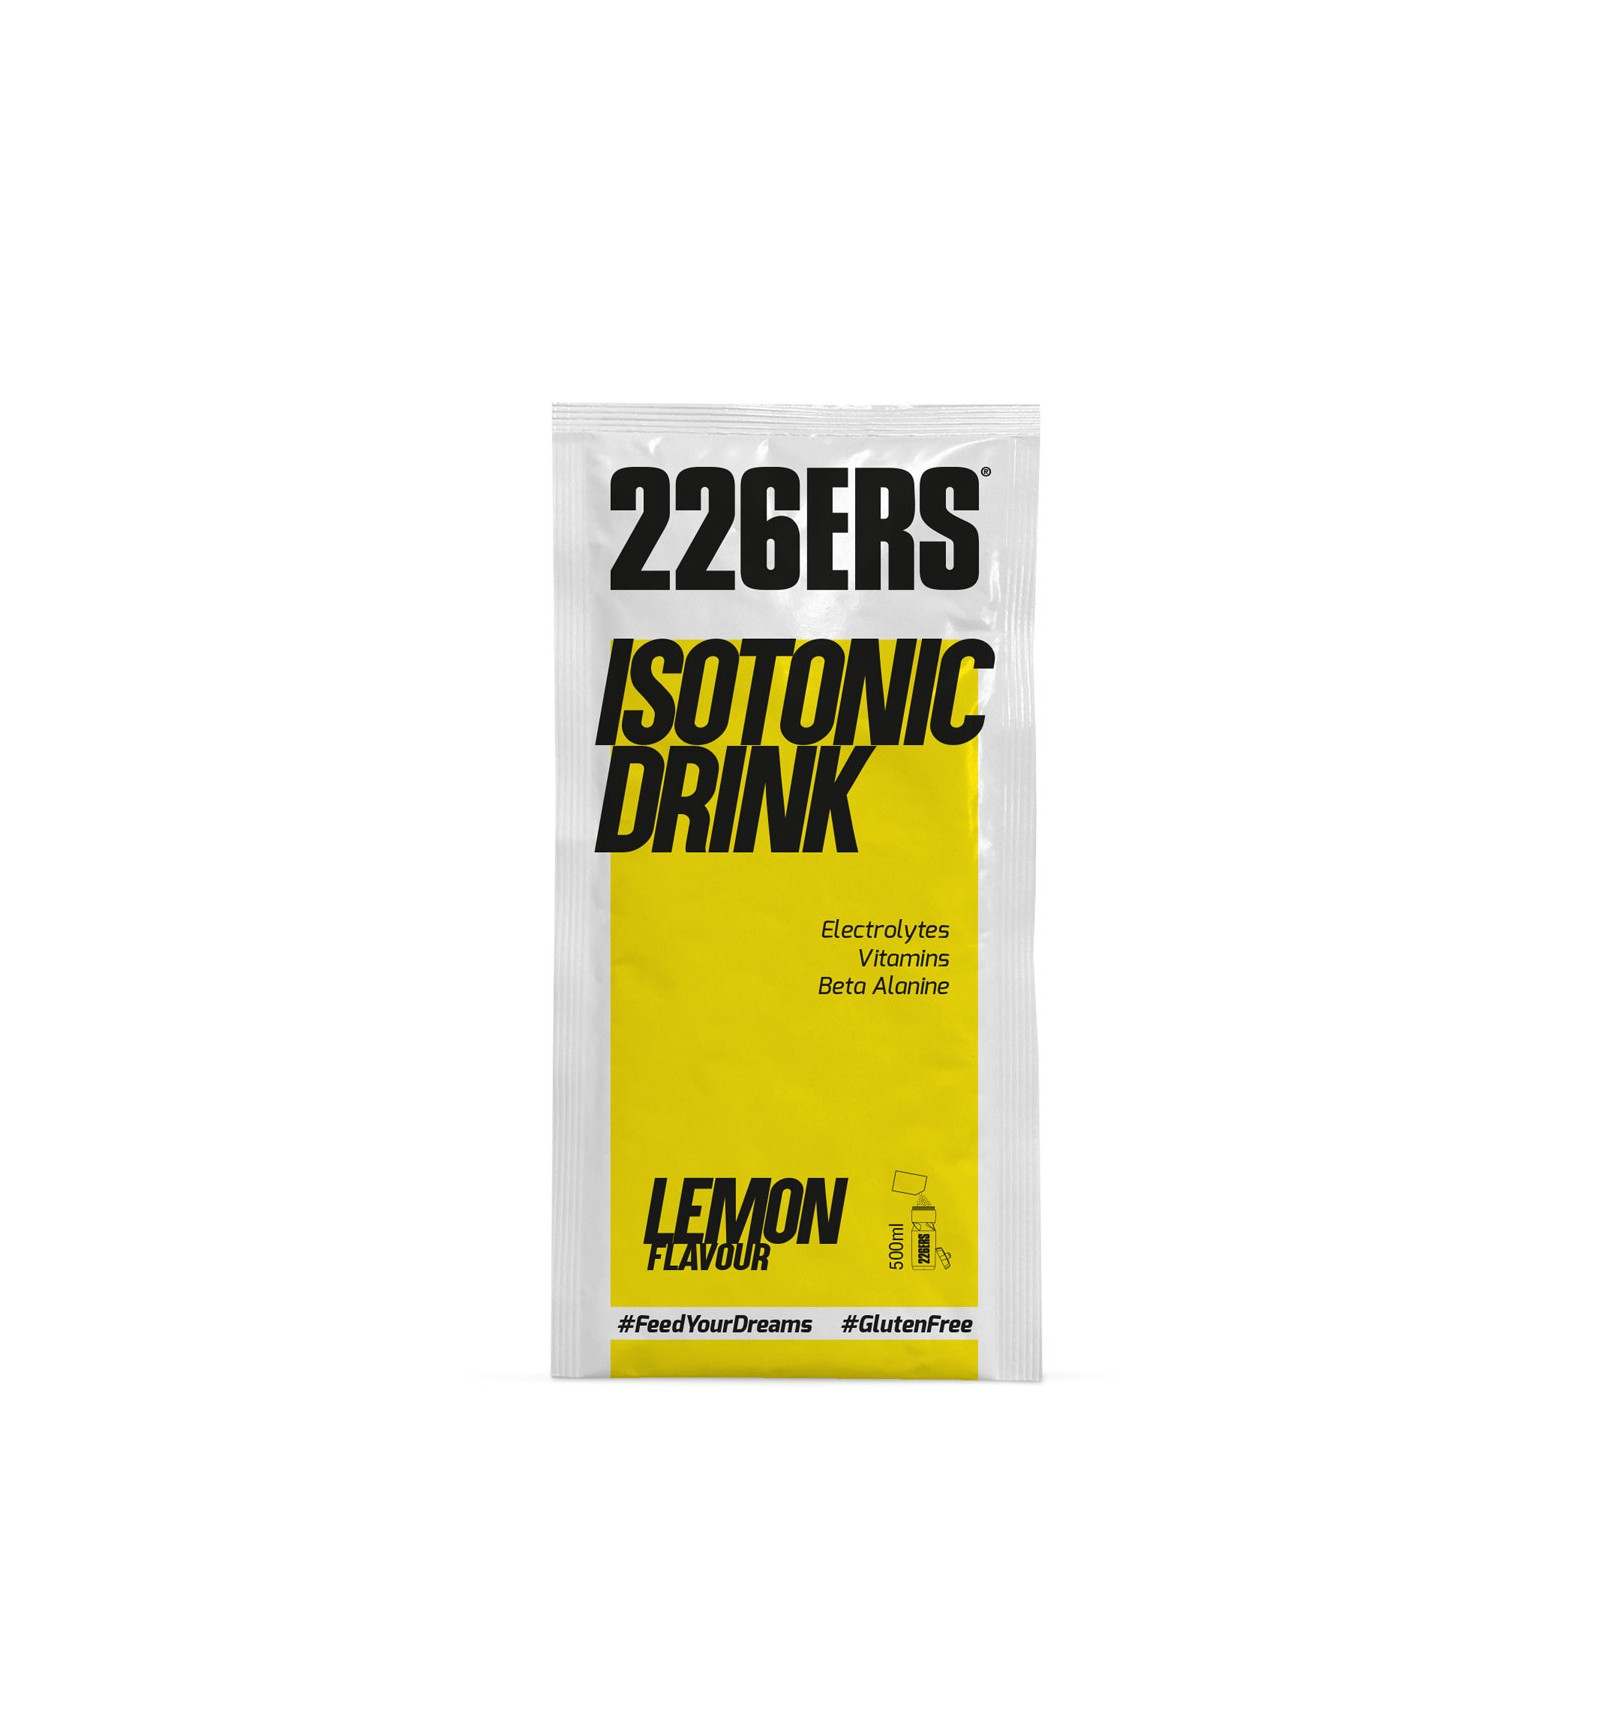 PW-ID-020-LM SOBRE 226 ISOTONIC DRINK LIMON 20GRS - 226ERS